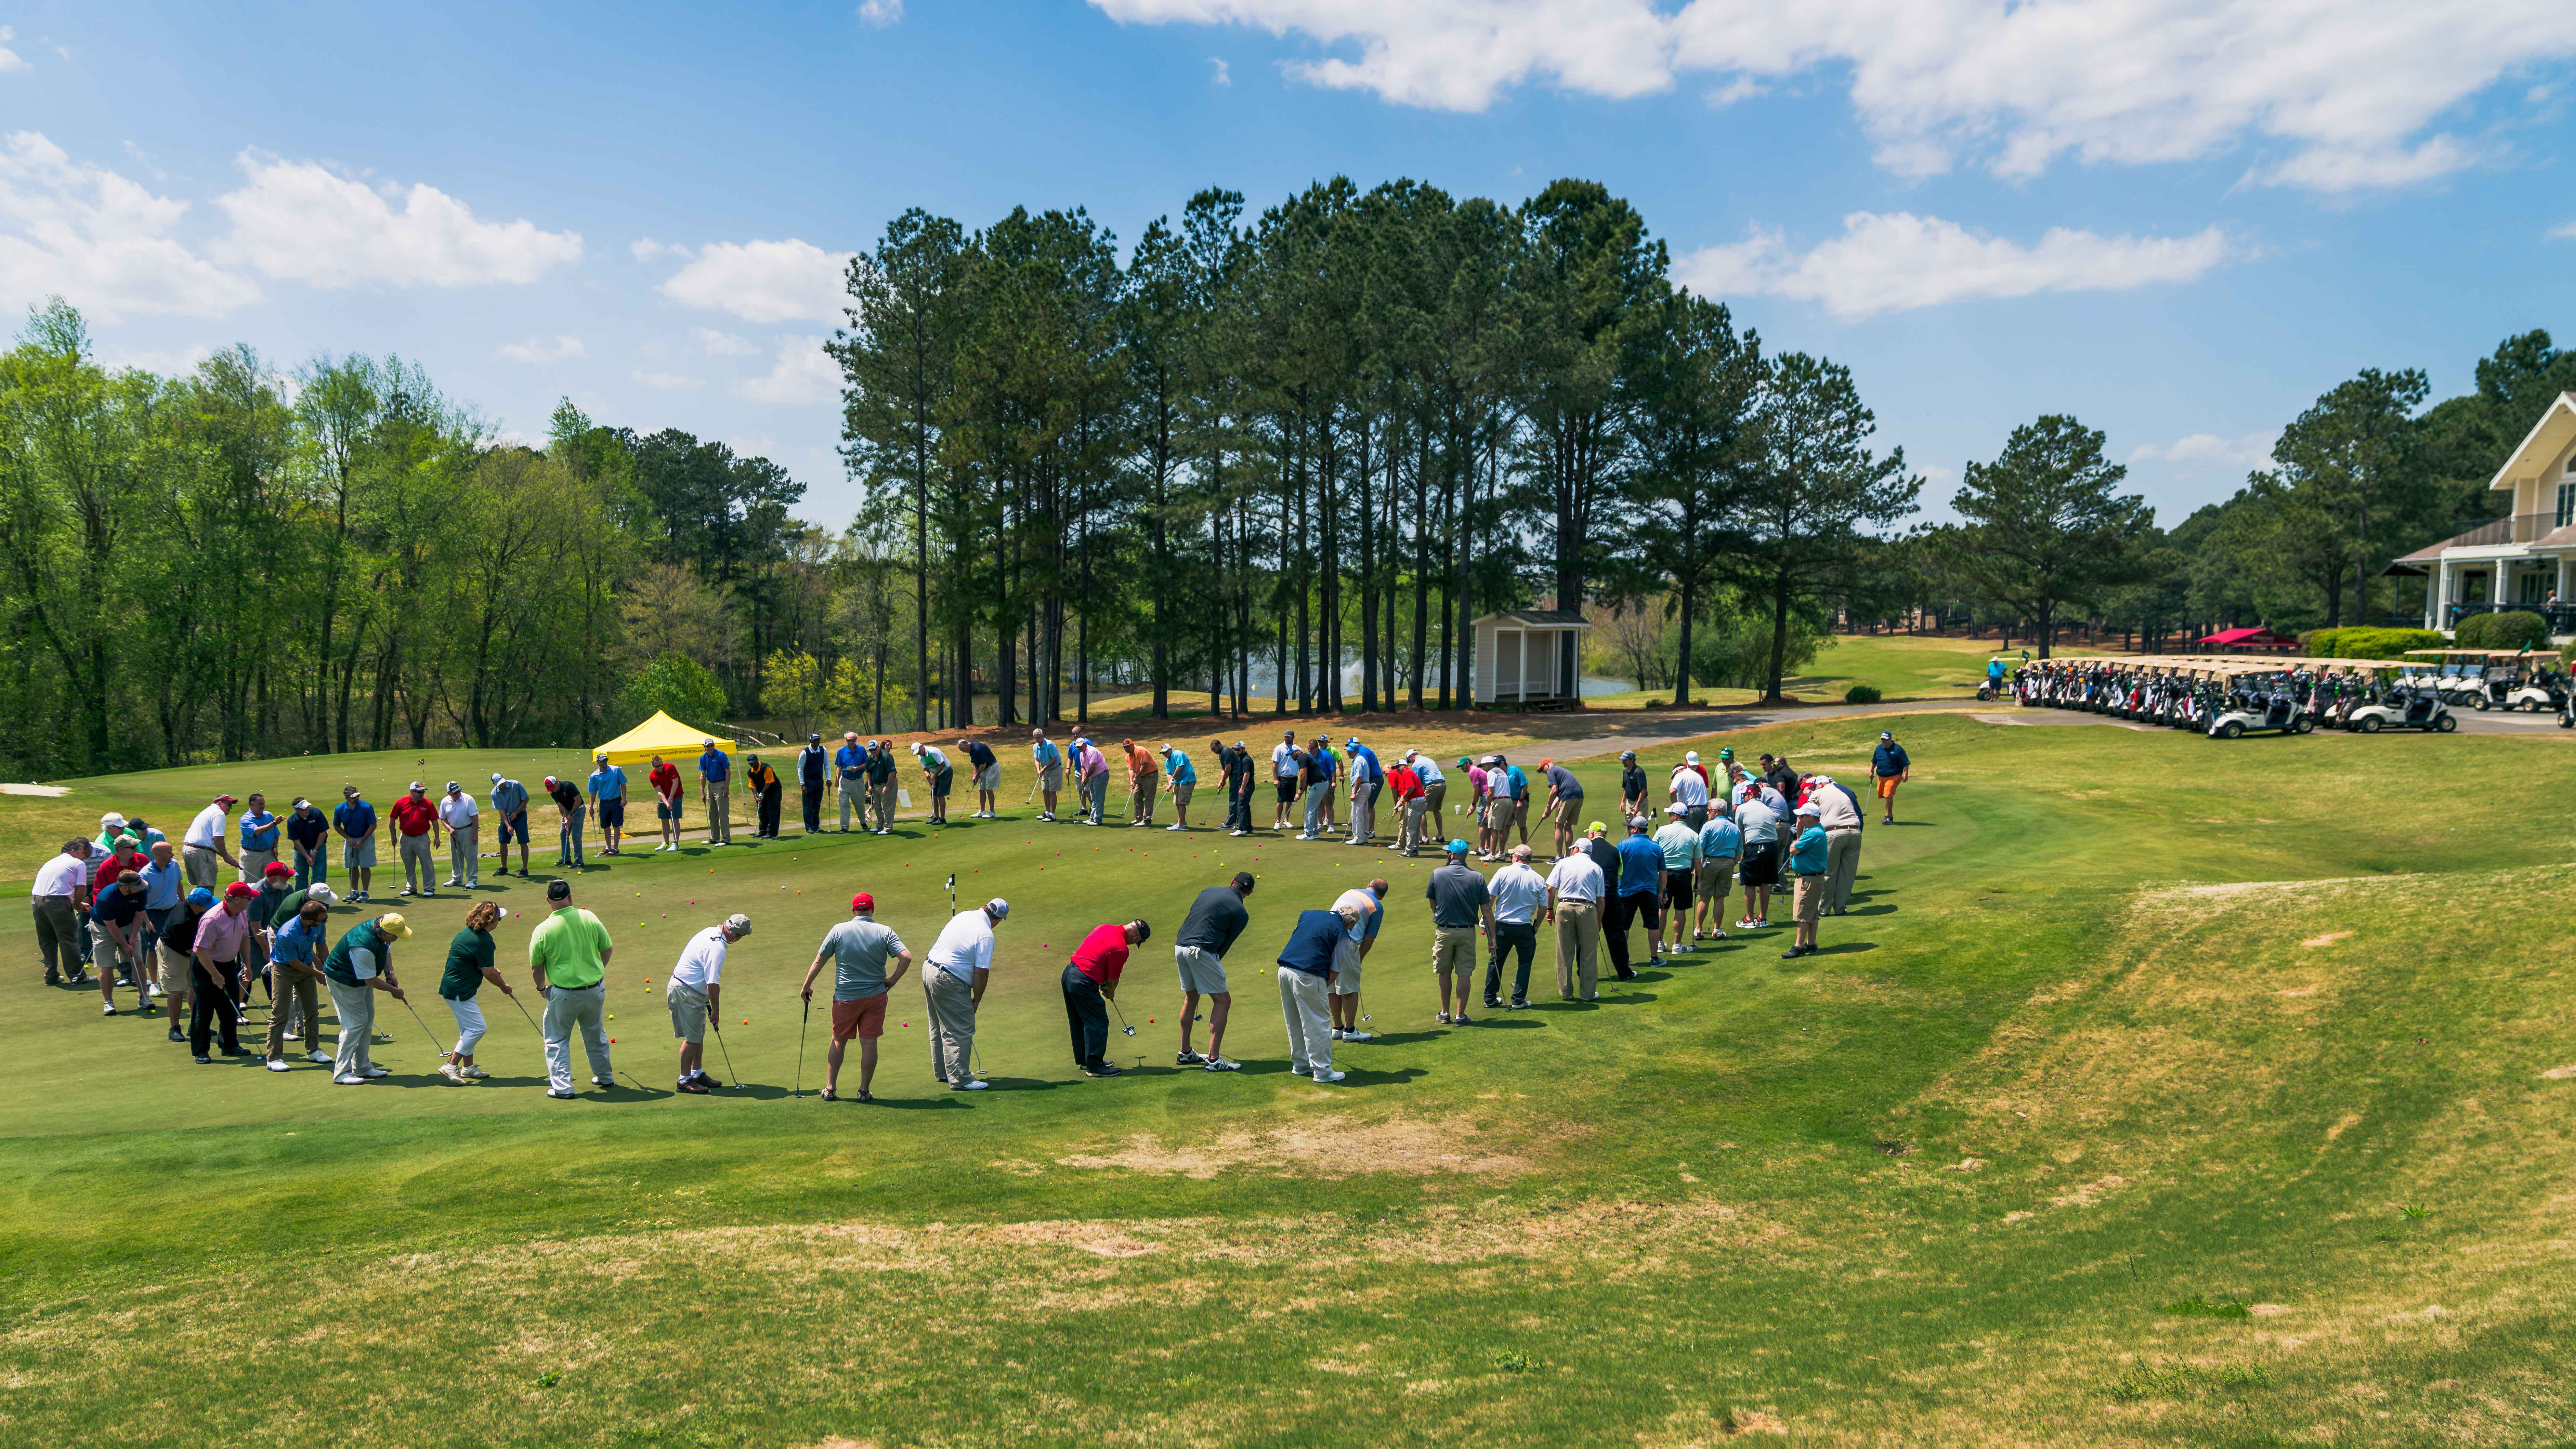 pictures are here 2018 golf tournament at heritage golf club